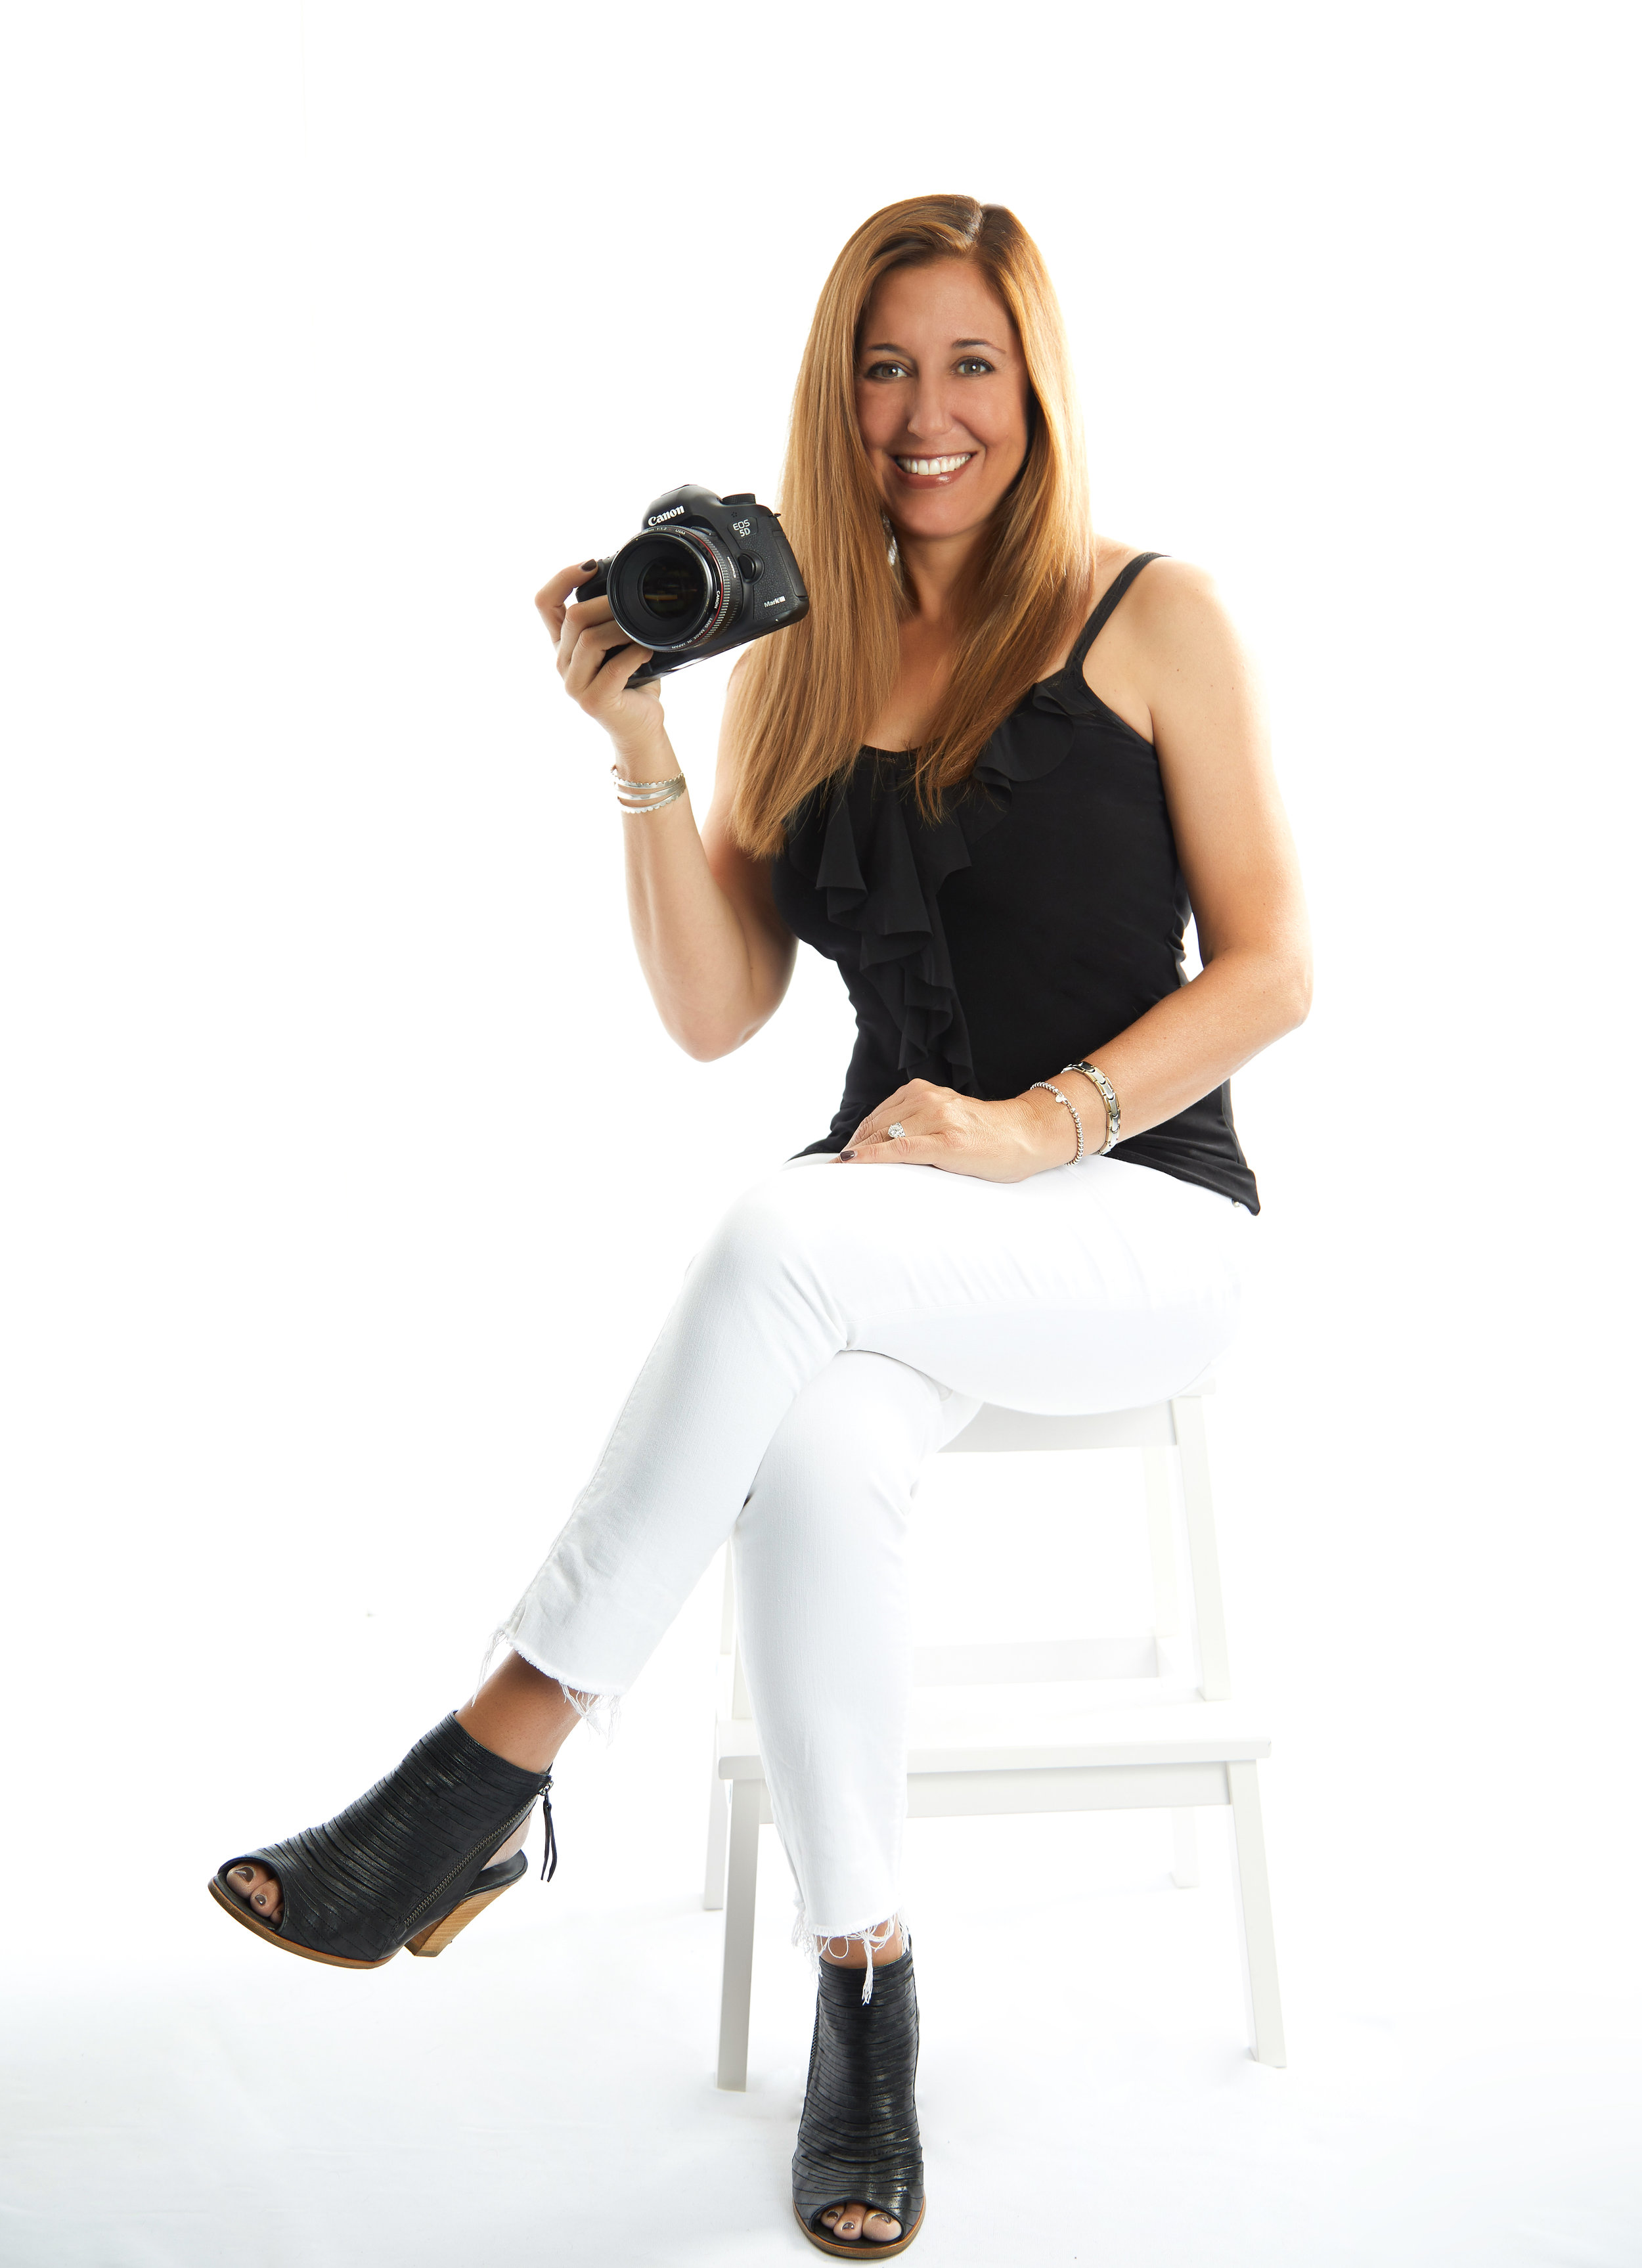 Missy Goldwyn, Boudoir Photographer in the San Francisco Bay Area, is wearing a black and white outfit while holding a camera.